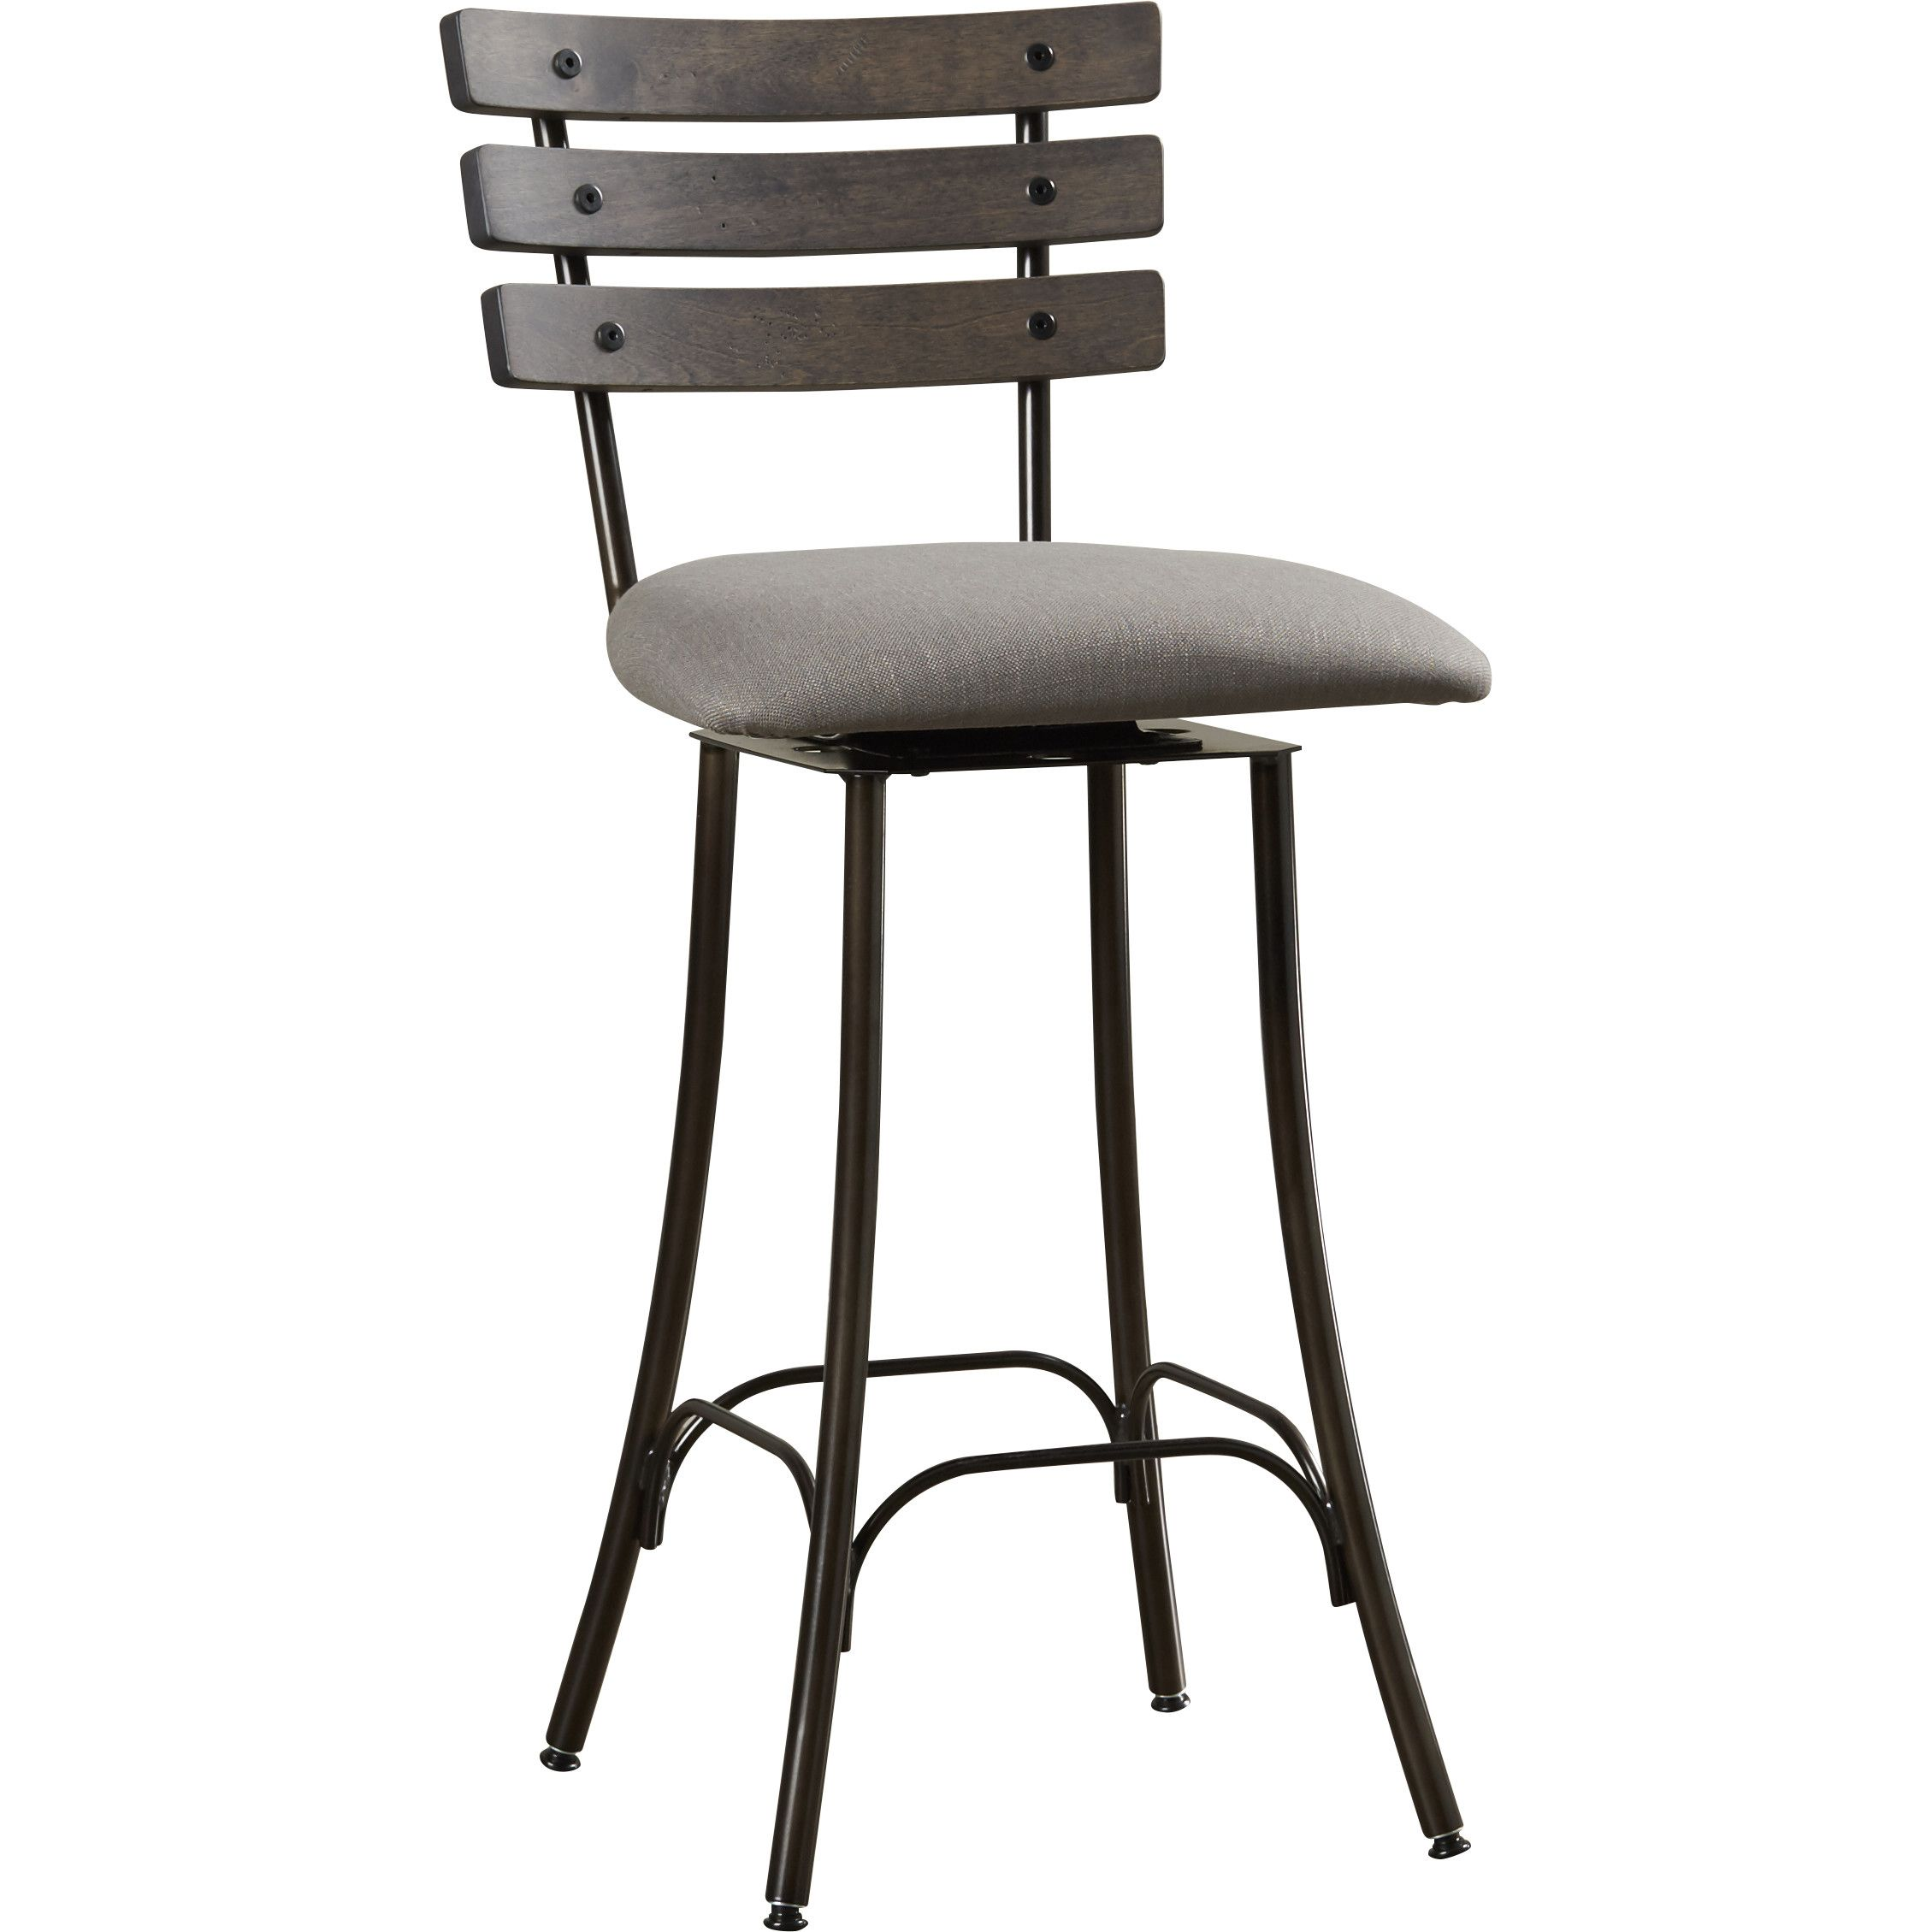 bar grove stools chase set copper counter stool home inch product garden today overstock free shipping of swivel